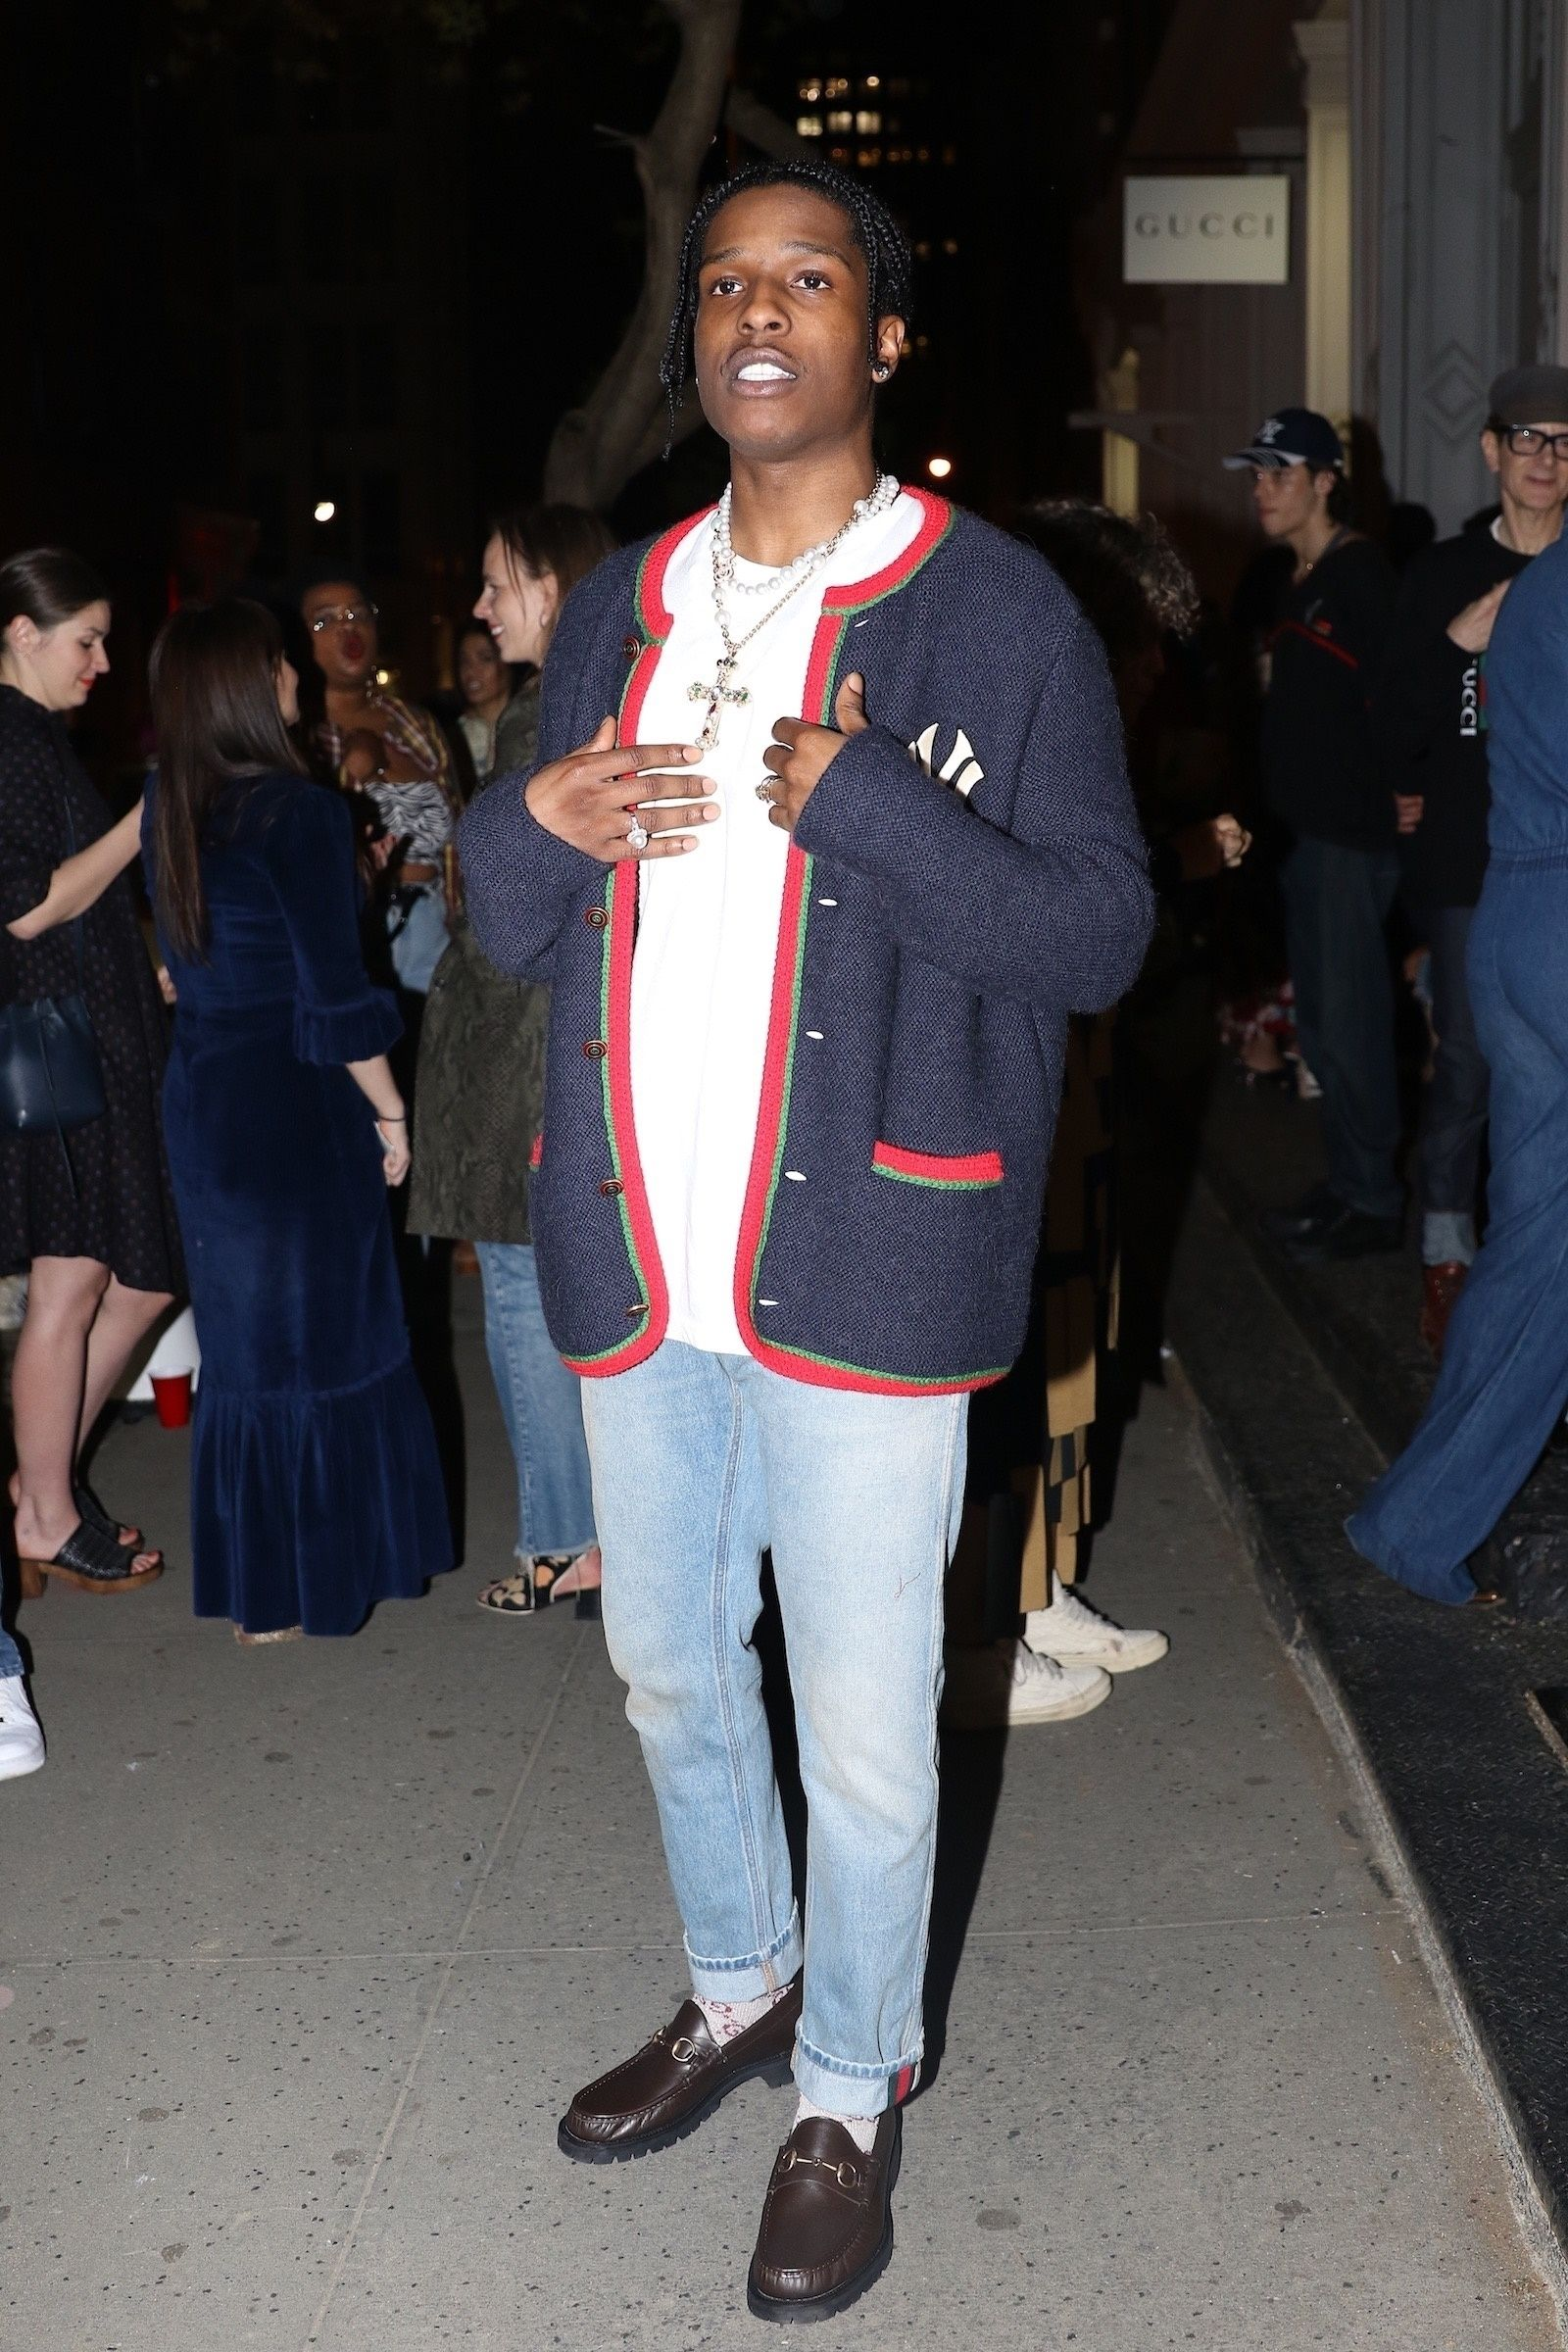 79218a585870bd ASAP Rocky wearing Gucci Fall 2018 RTW Yankees Cardigan